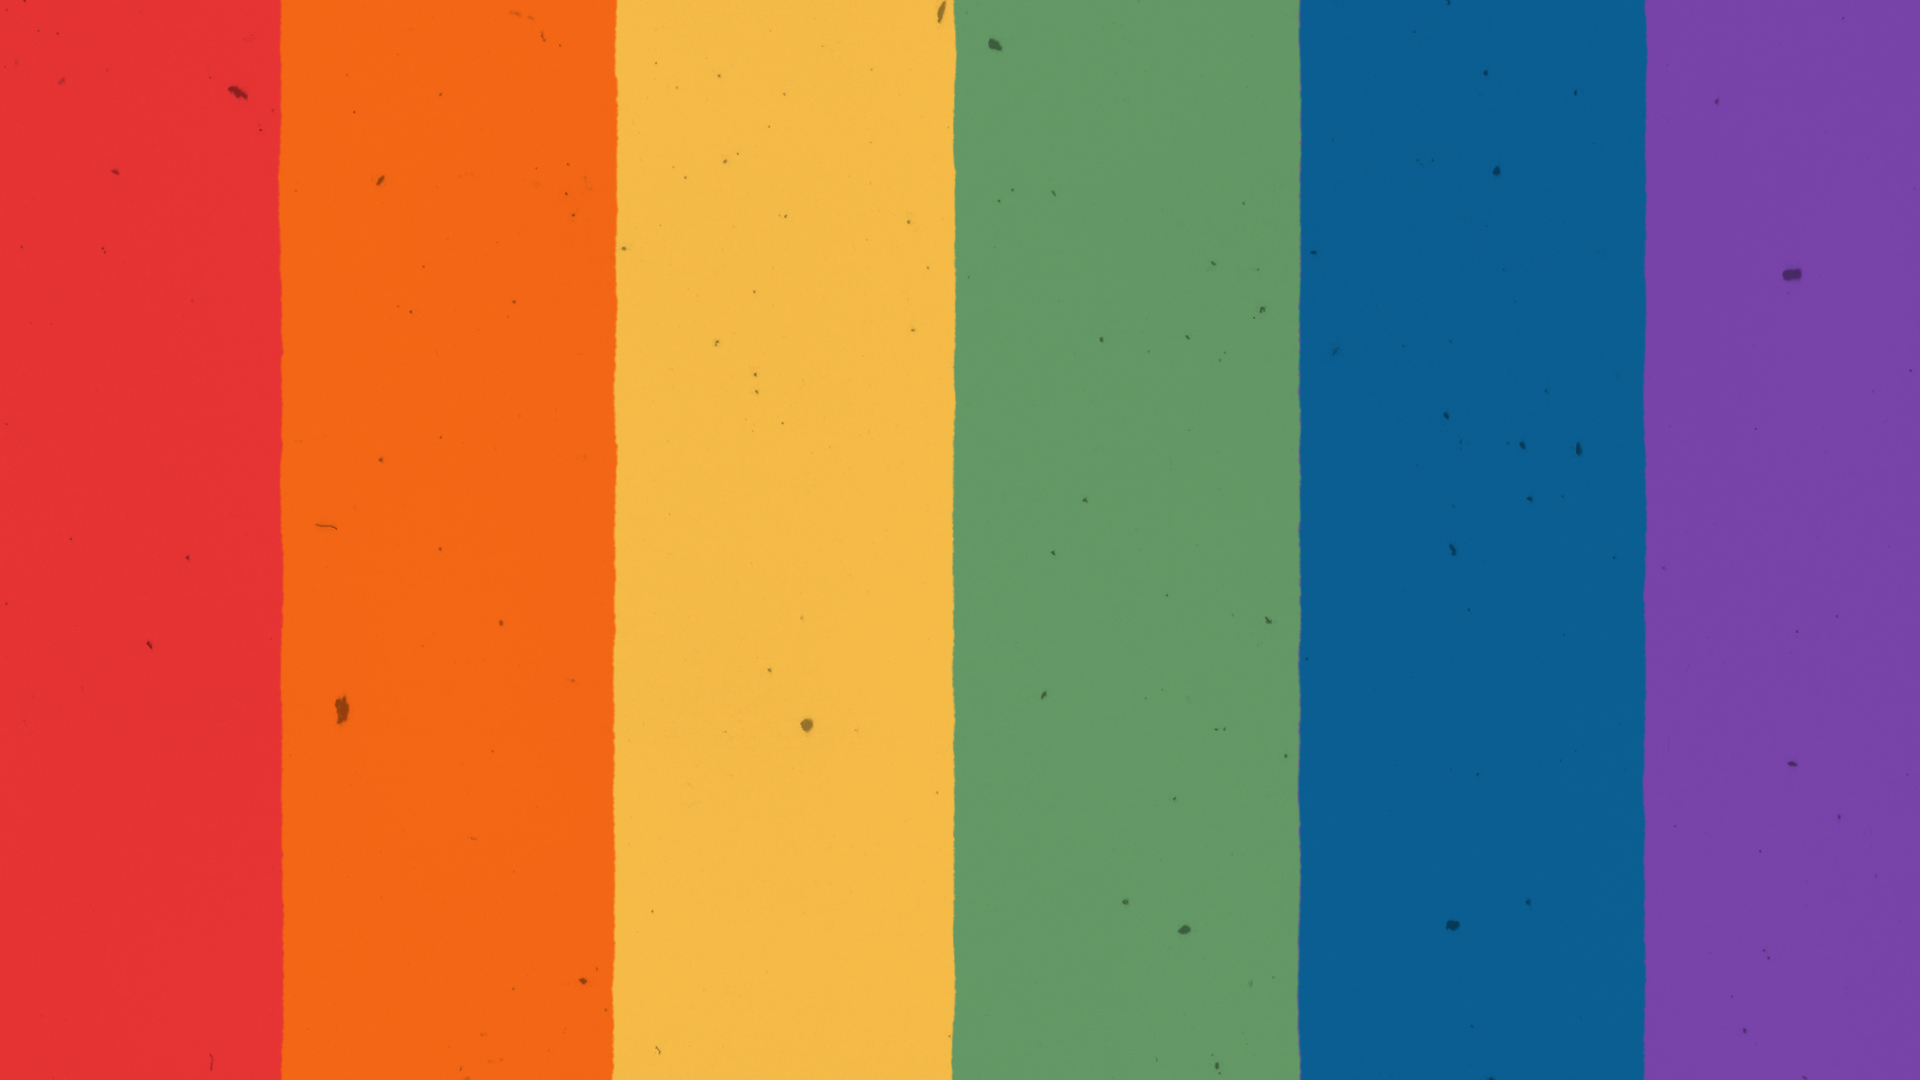 Pride 2019: A history of the rainbow flag